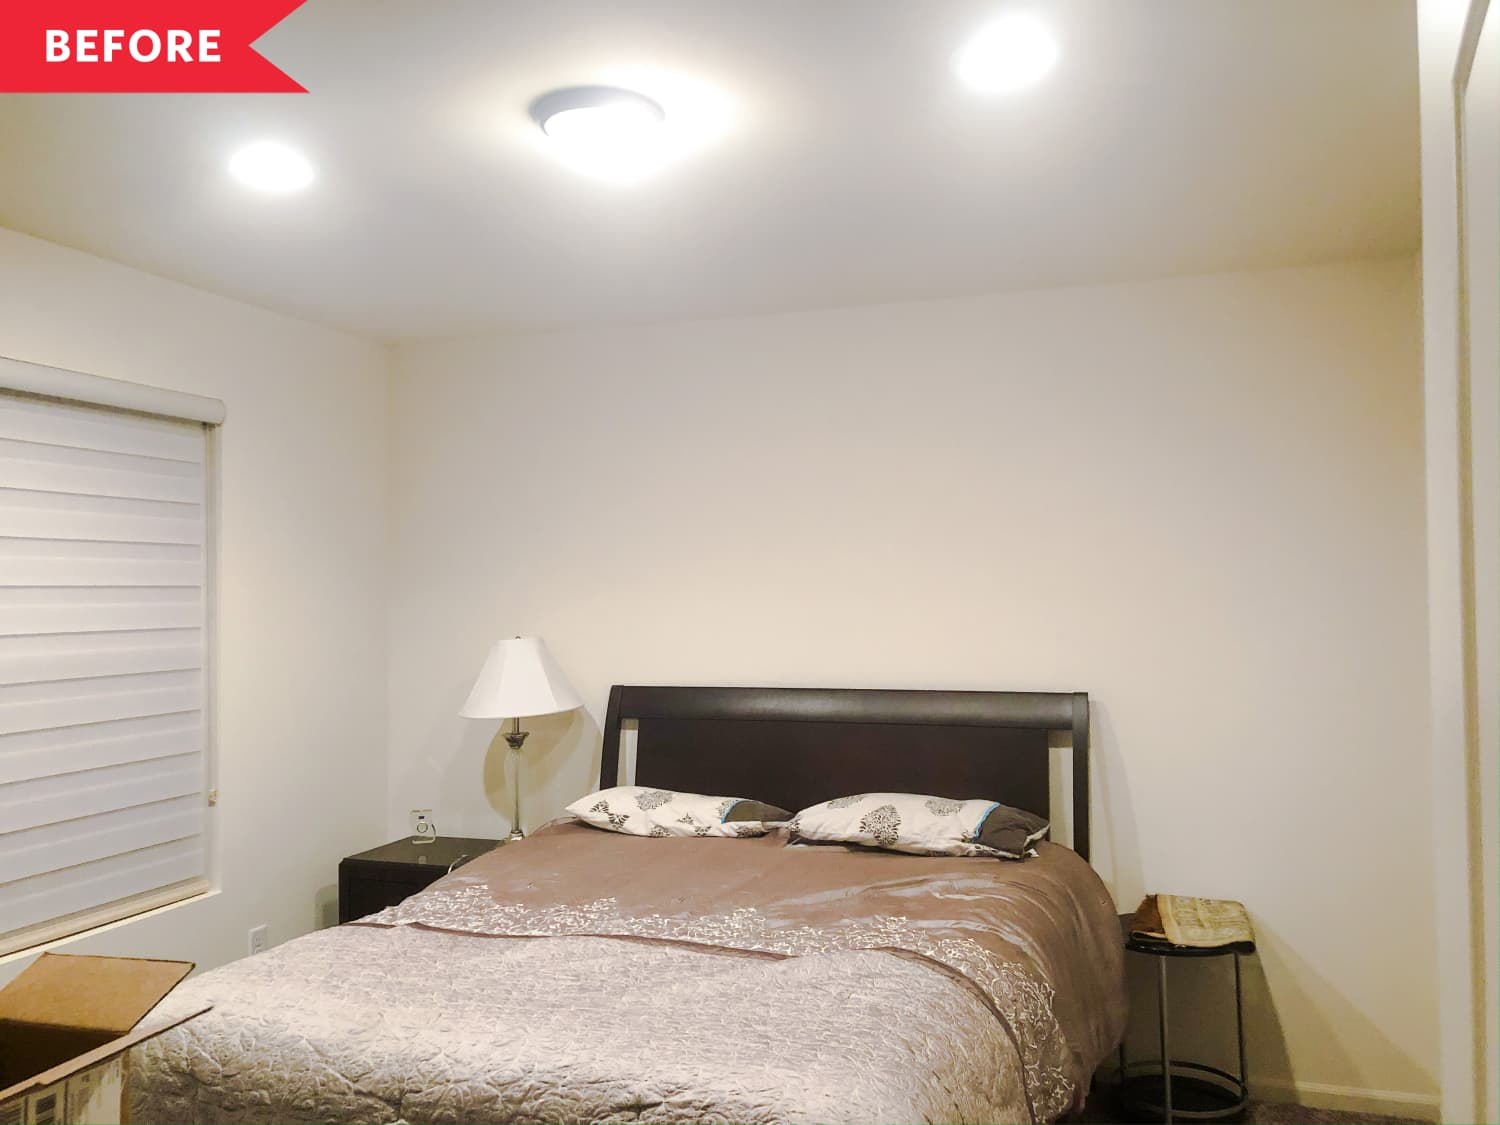 Before and After: A $340 DIY Bedroom Proves the Power of a Fresh, Fun Paint Job